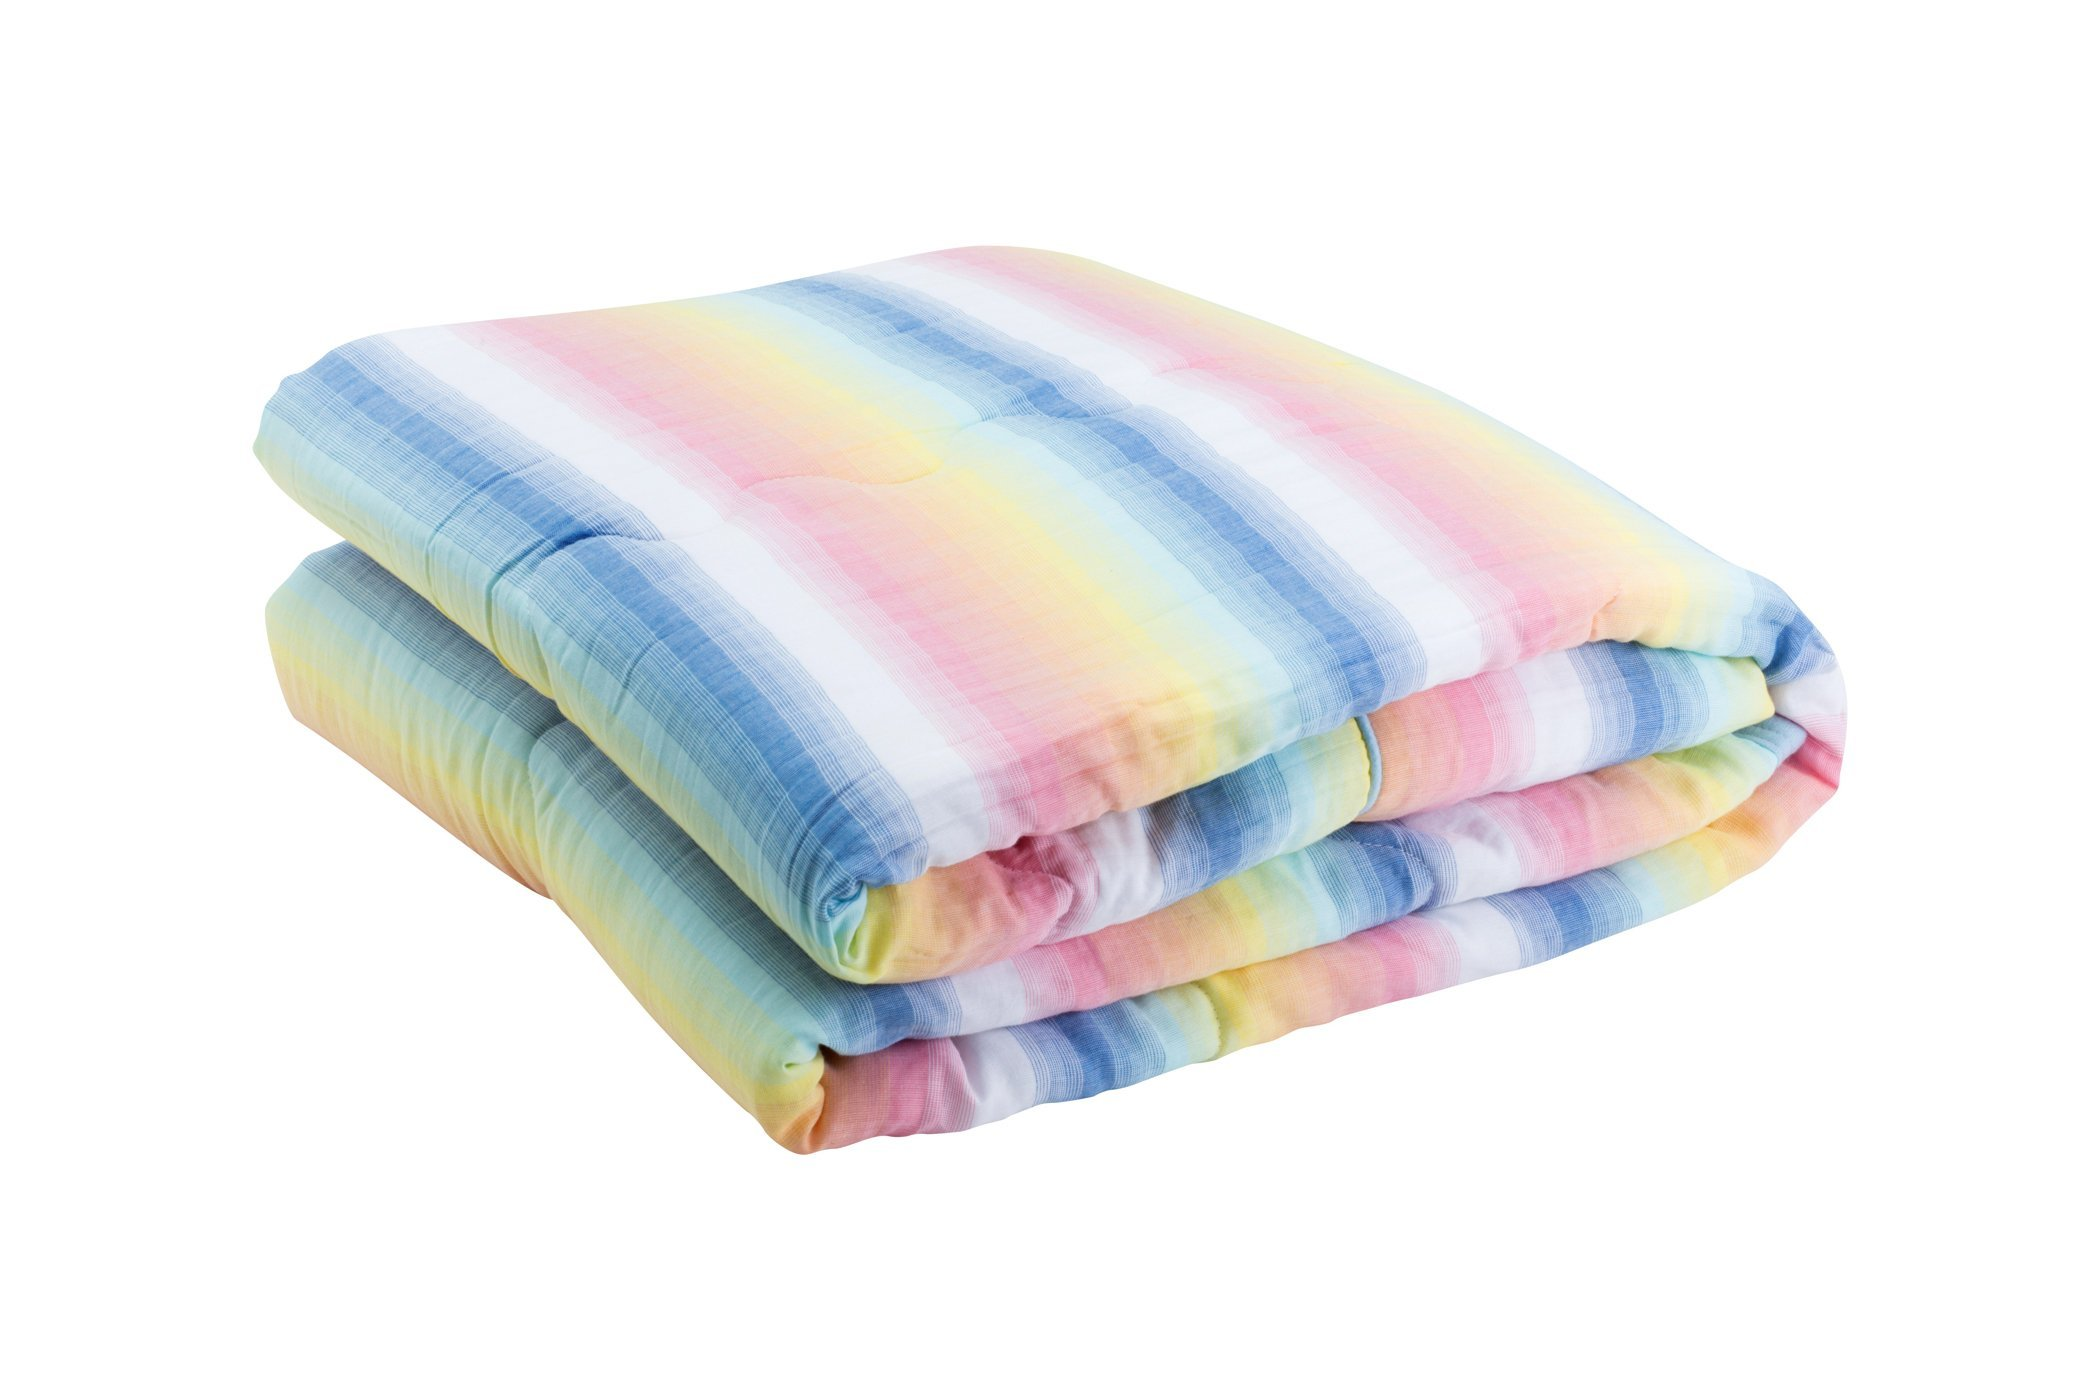 Henry and Brothers Cotton Cloud Kids' Quilt Bunk Bed Size, (Ombre Rainbow Stripe)